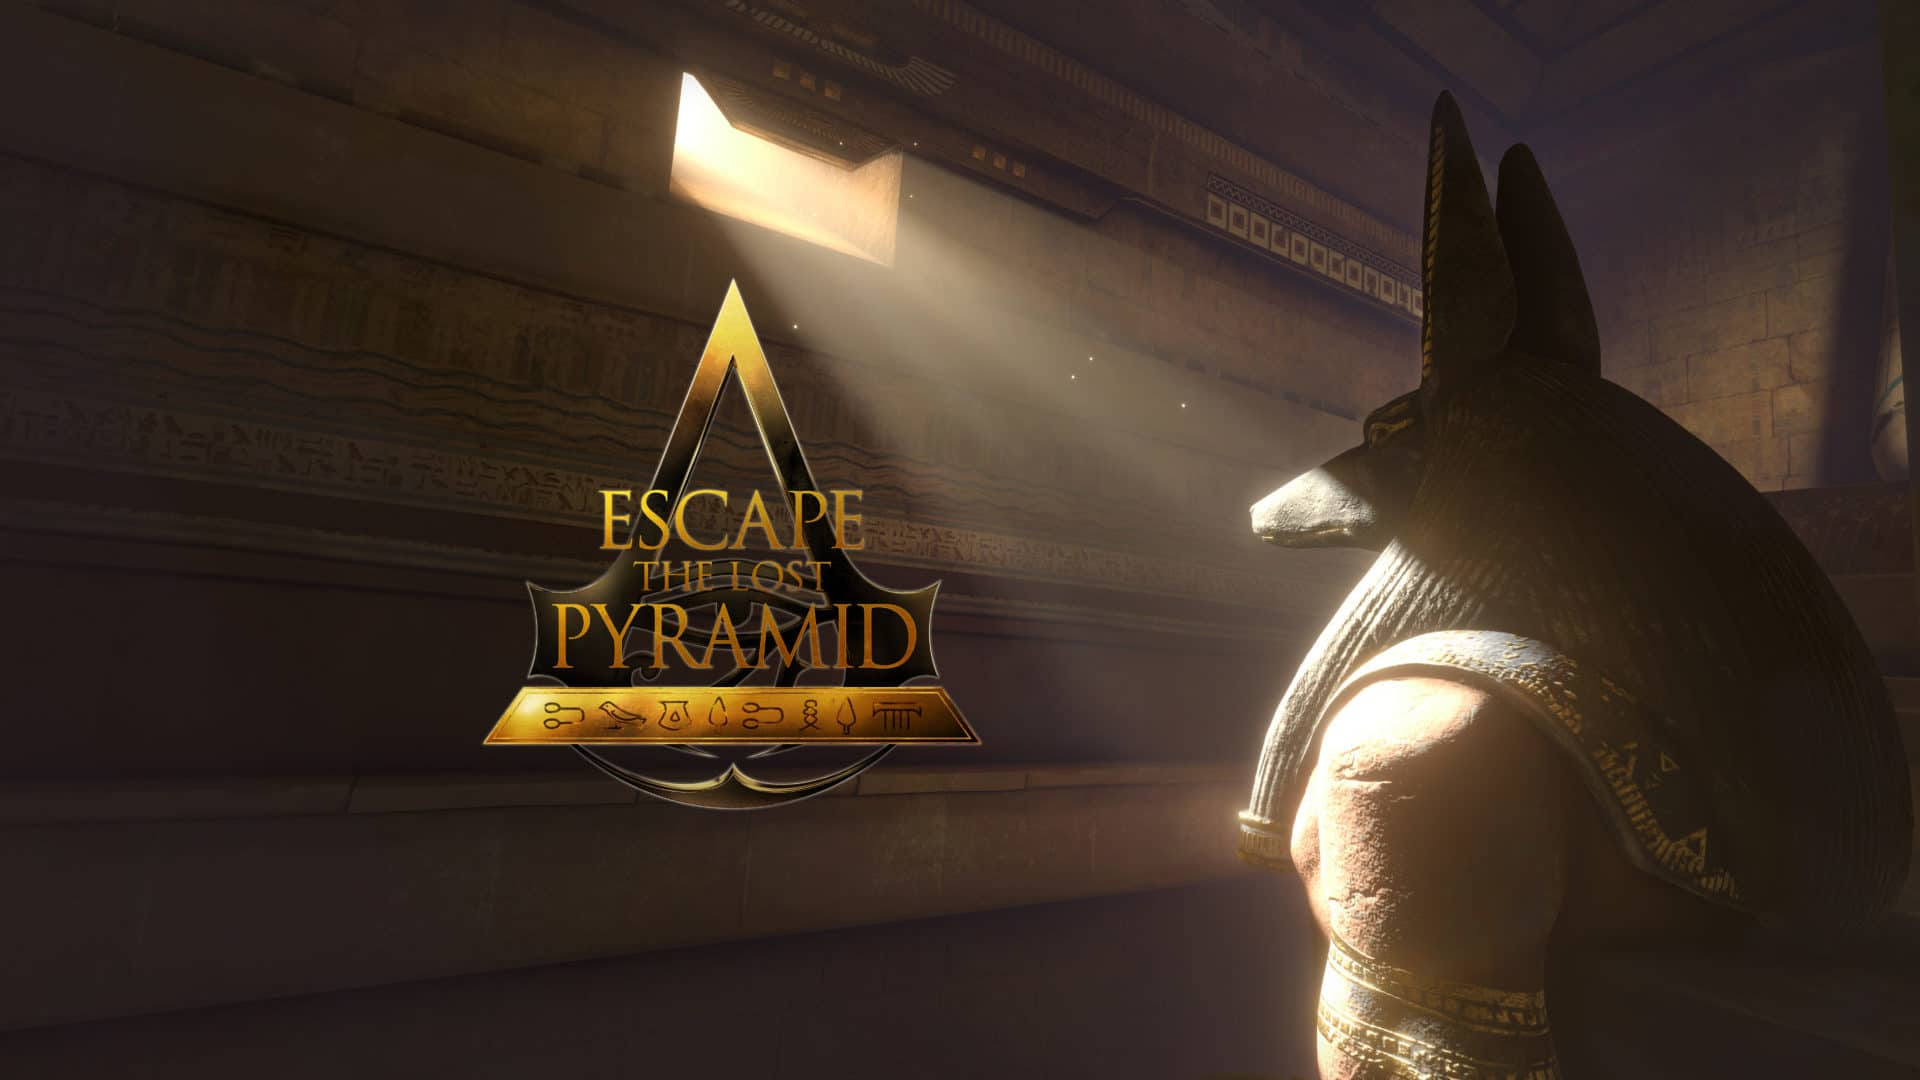 EscapeTheLostPyramid